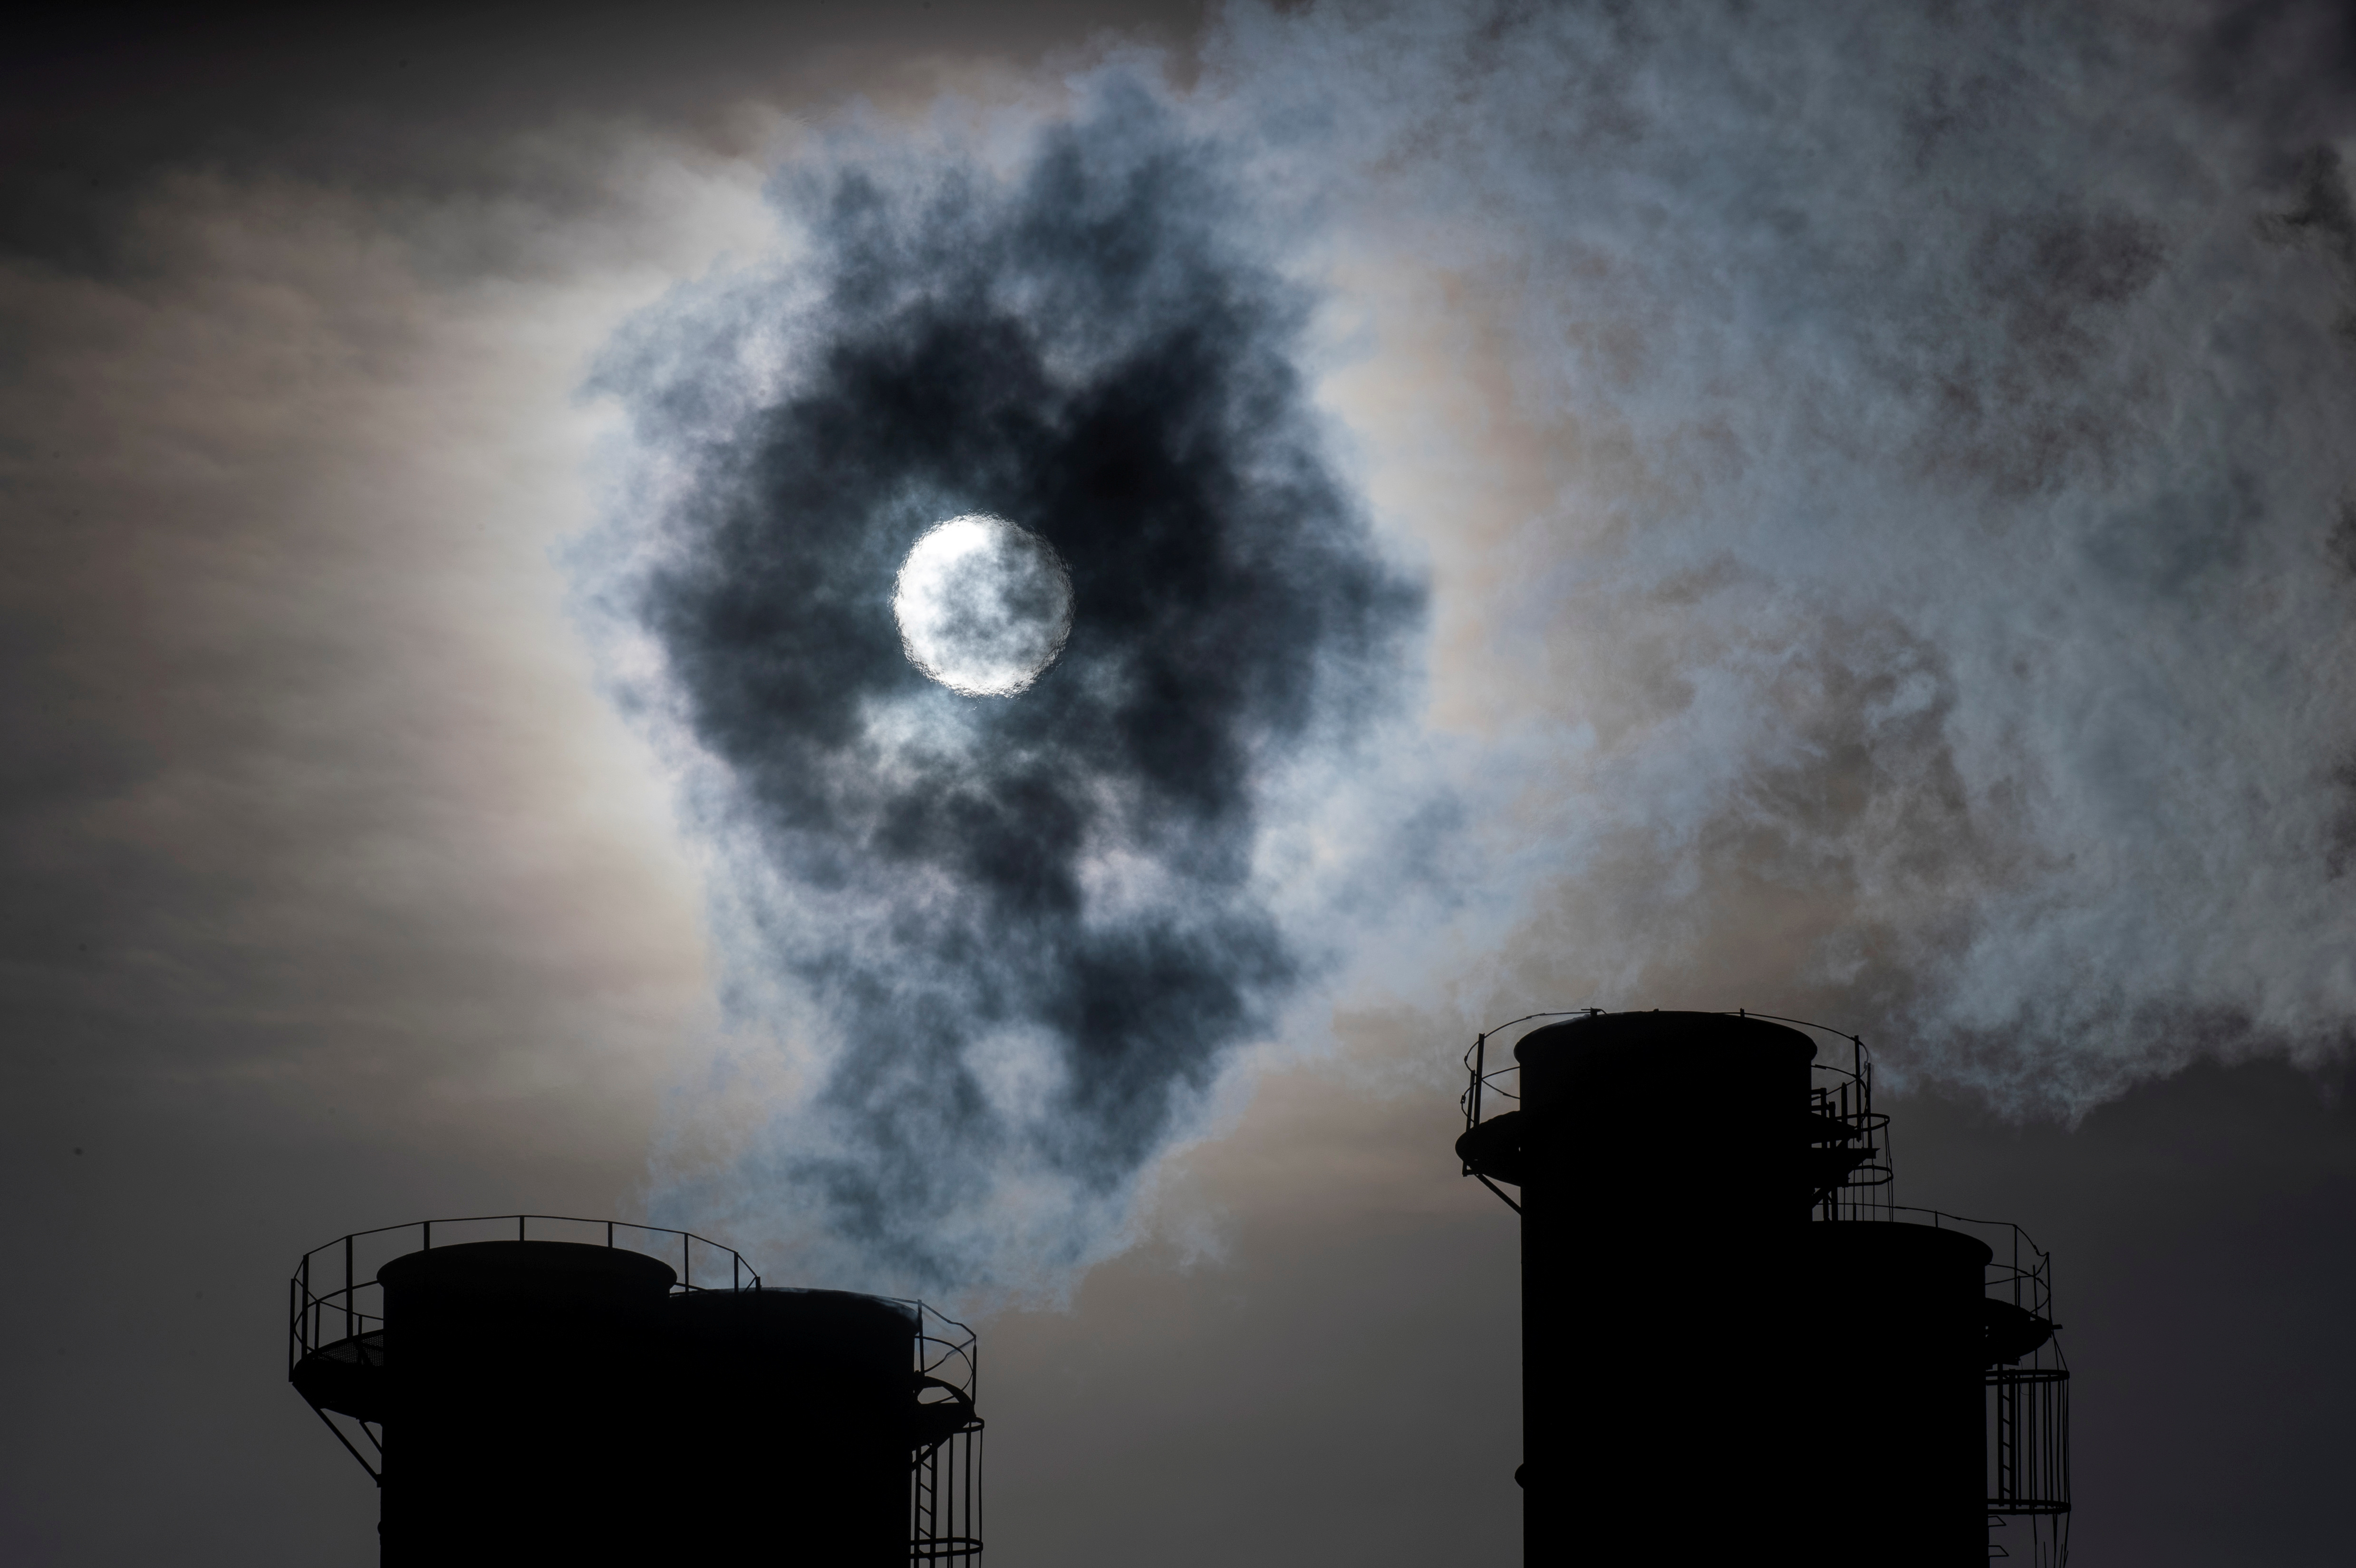 Sun shines through steam rising from chimneys of a power plant in Moscow, Russia November 13, 2019. REUTERS/Maxim Shemetov